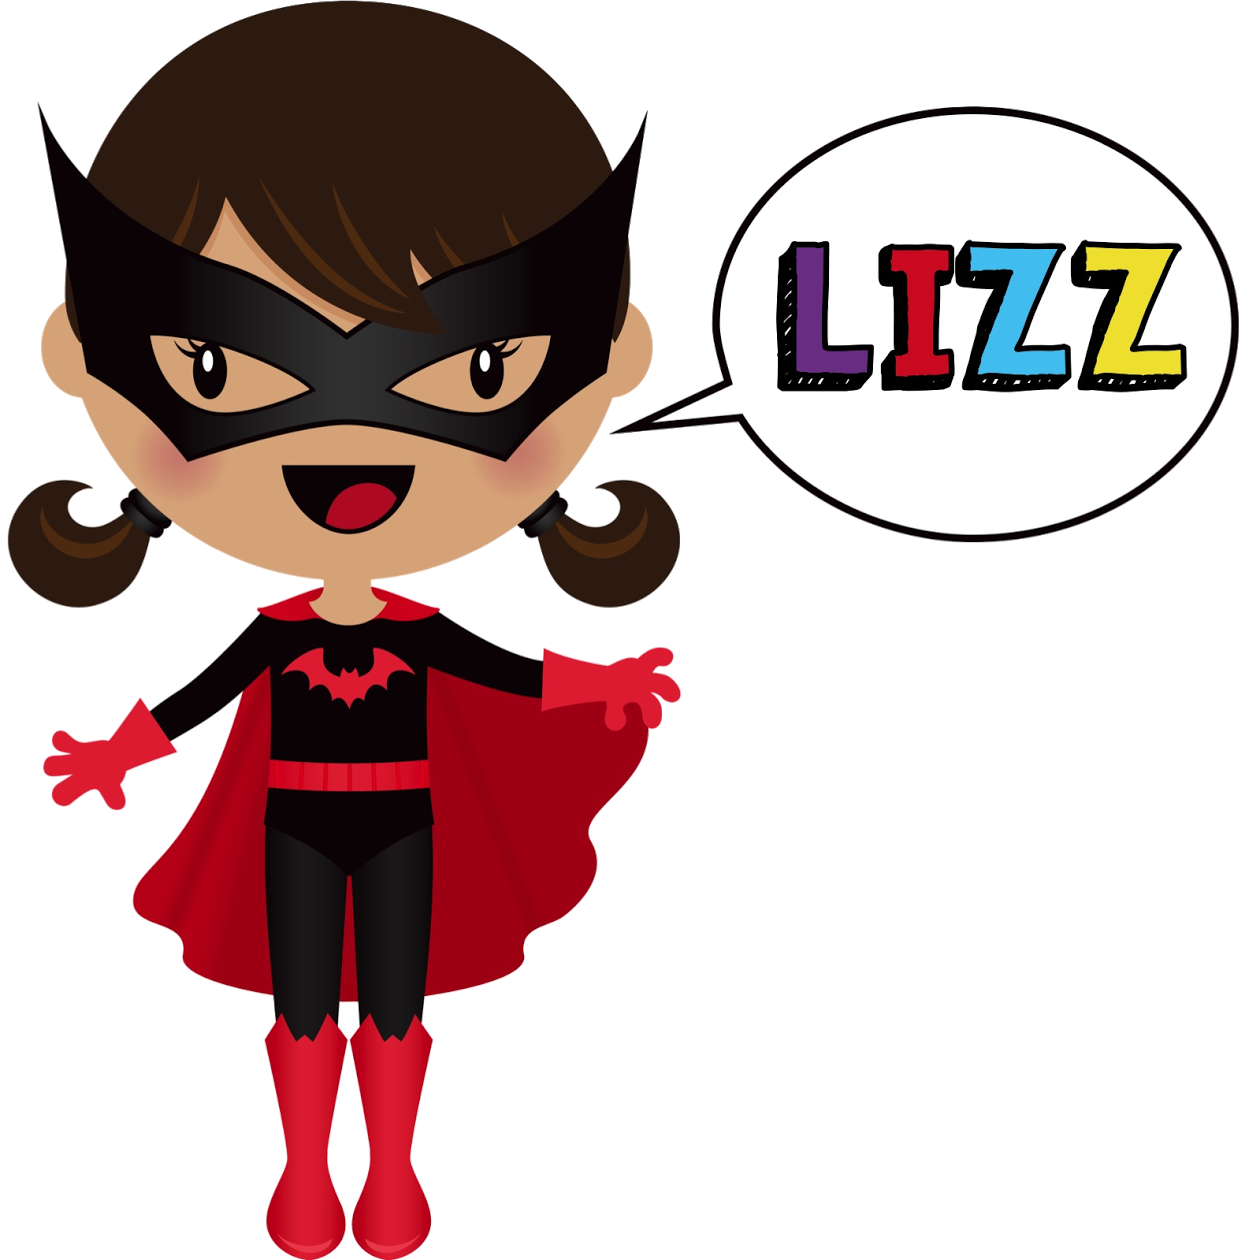 Primary Powers Lizz Learning With Lizz R